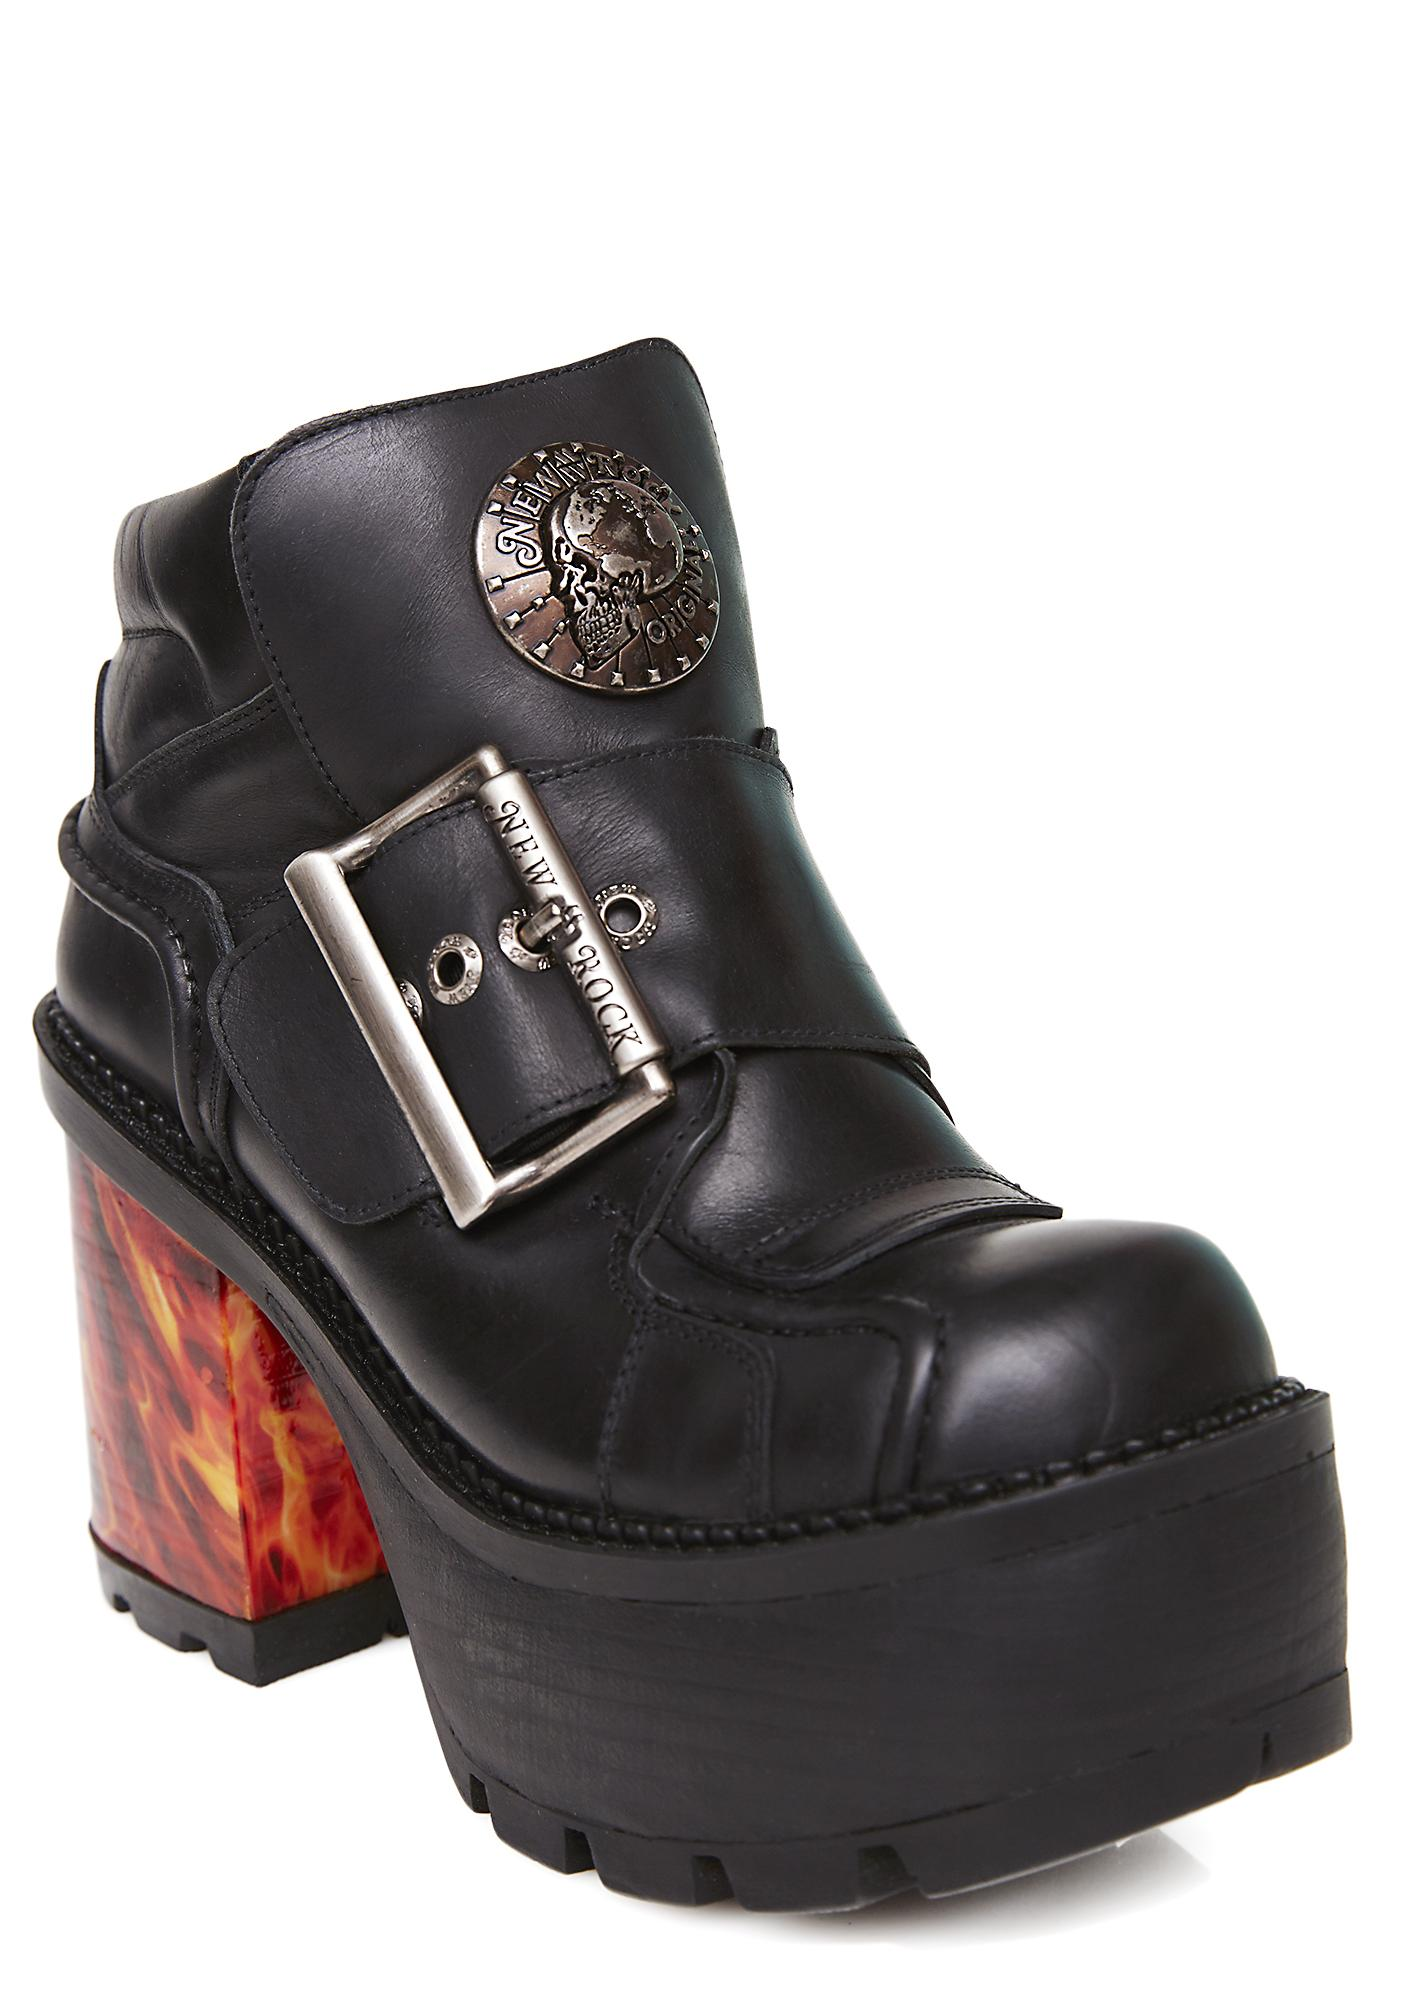 New Rock Firewalker Platform Ankle Boots